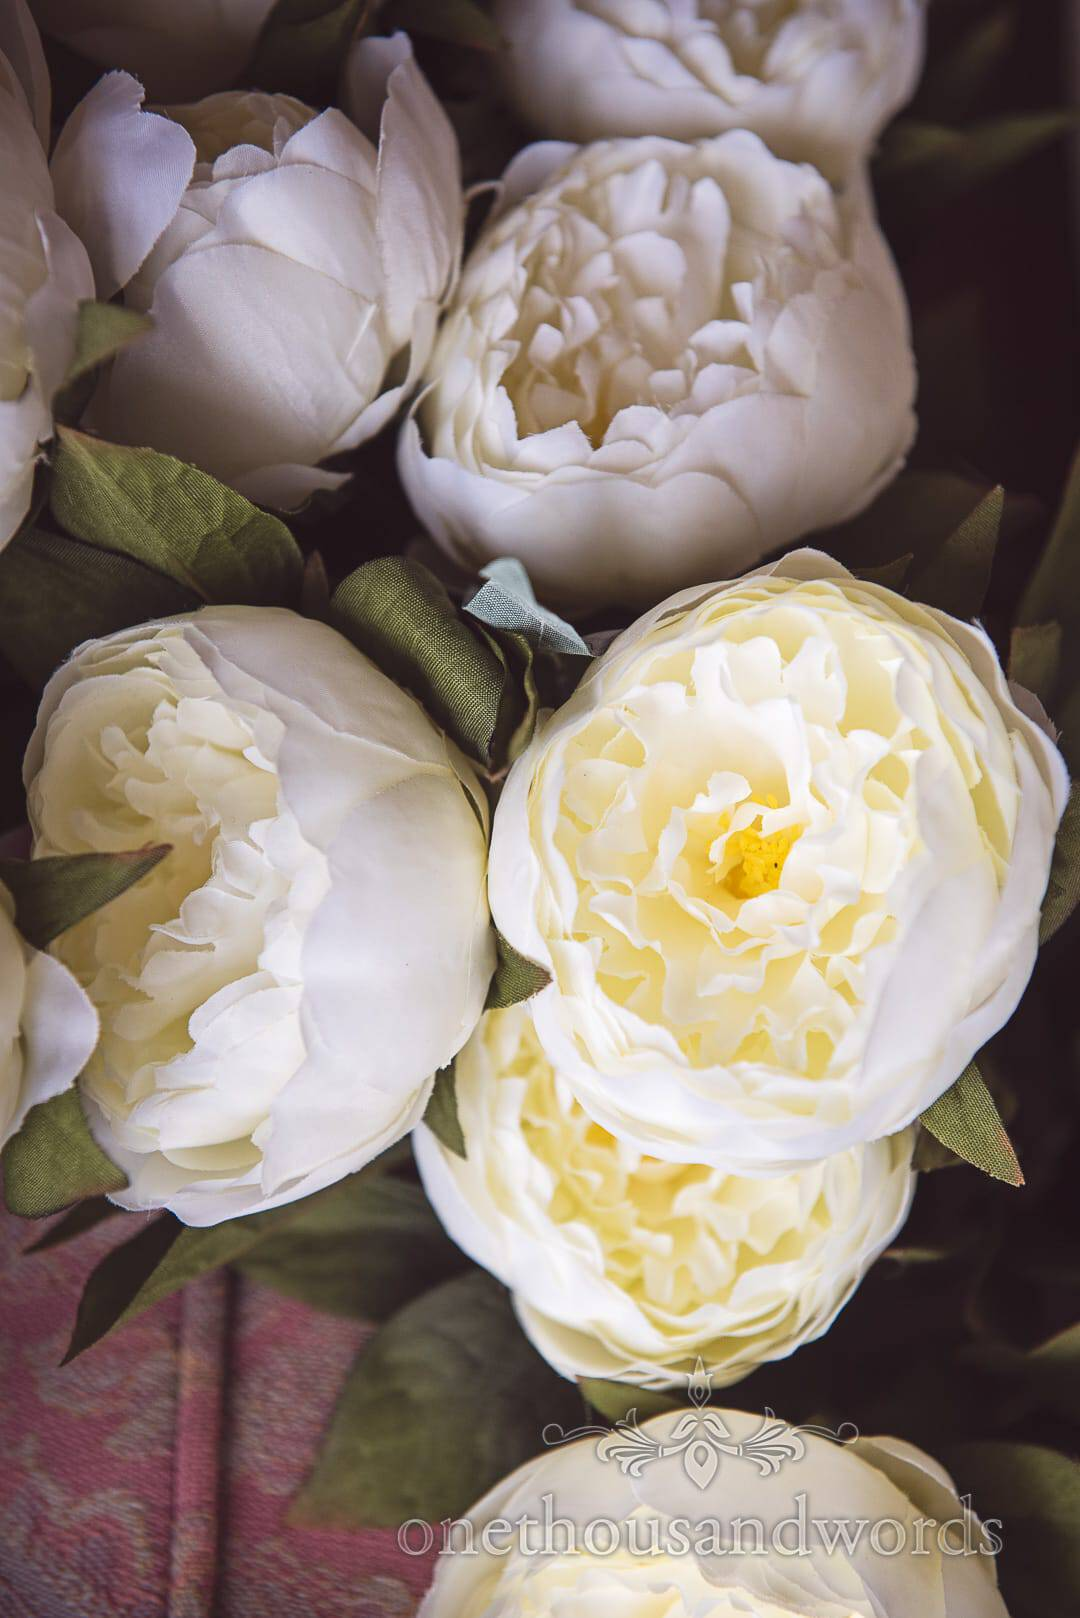 white and cream silk wedding flowers with green foliage detail photograph